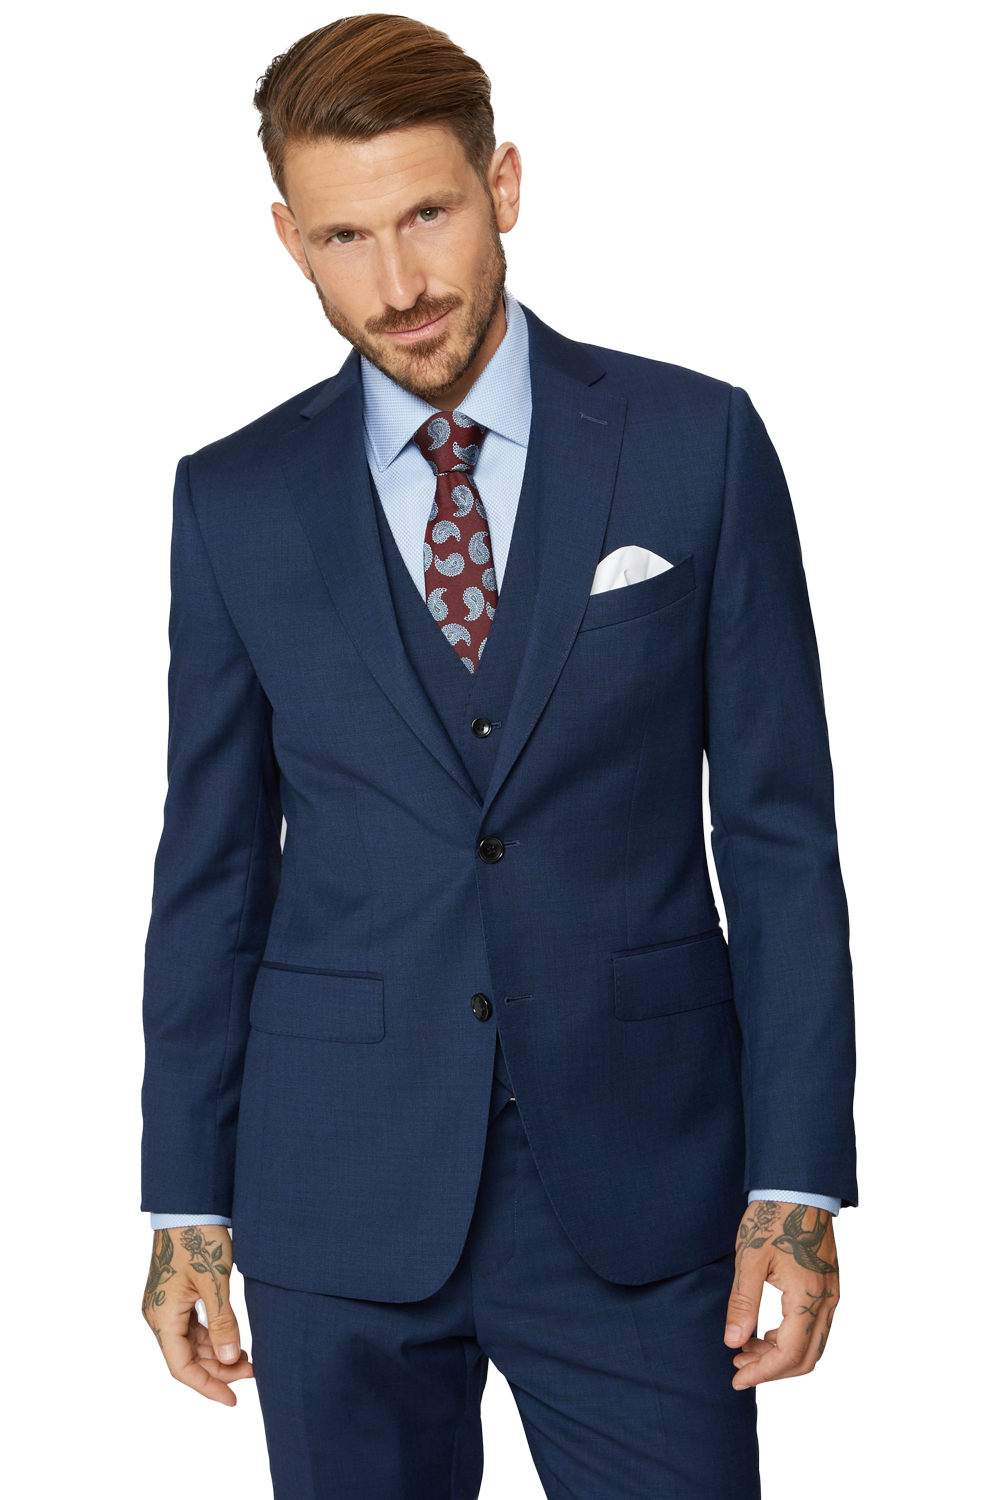 Moss Bros Mens Bright Blue Suit Jacket 2 Button Wool Tailored Fit ...